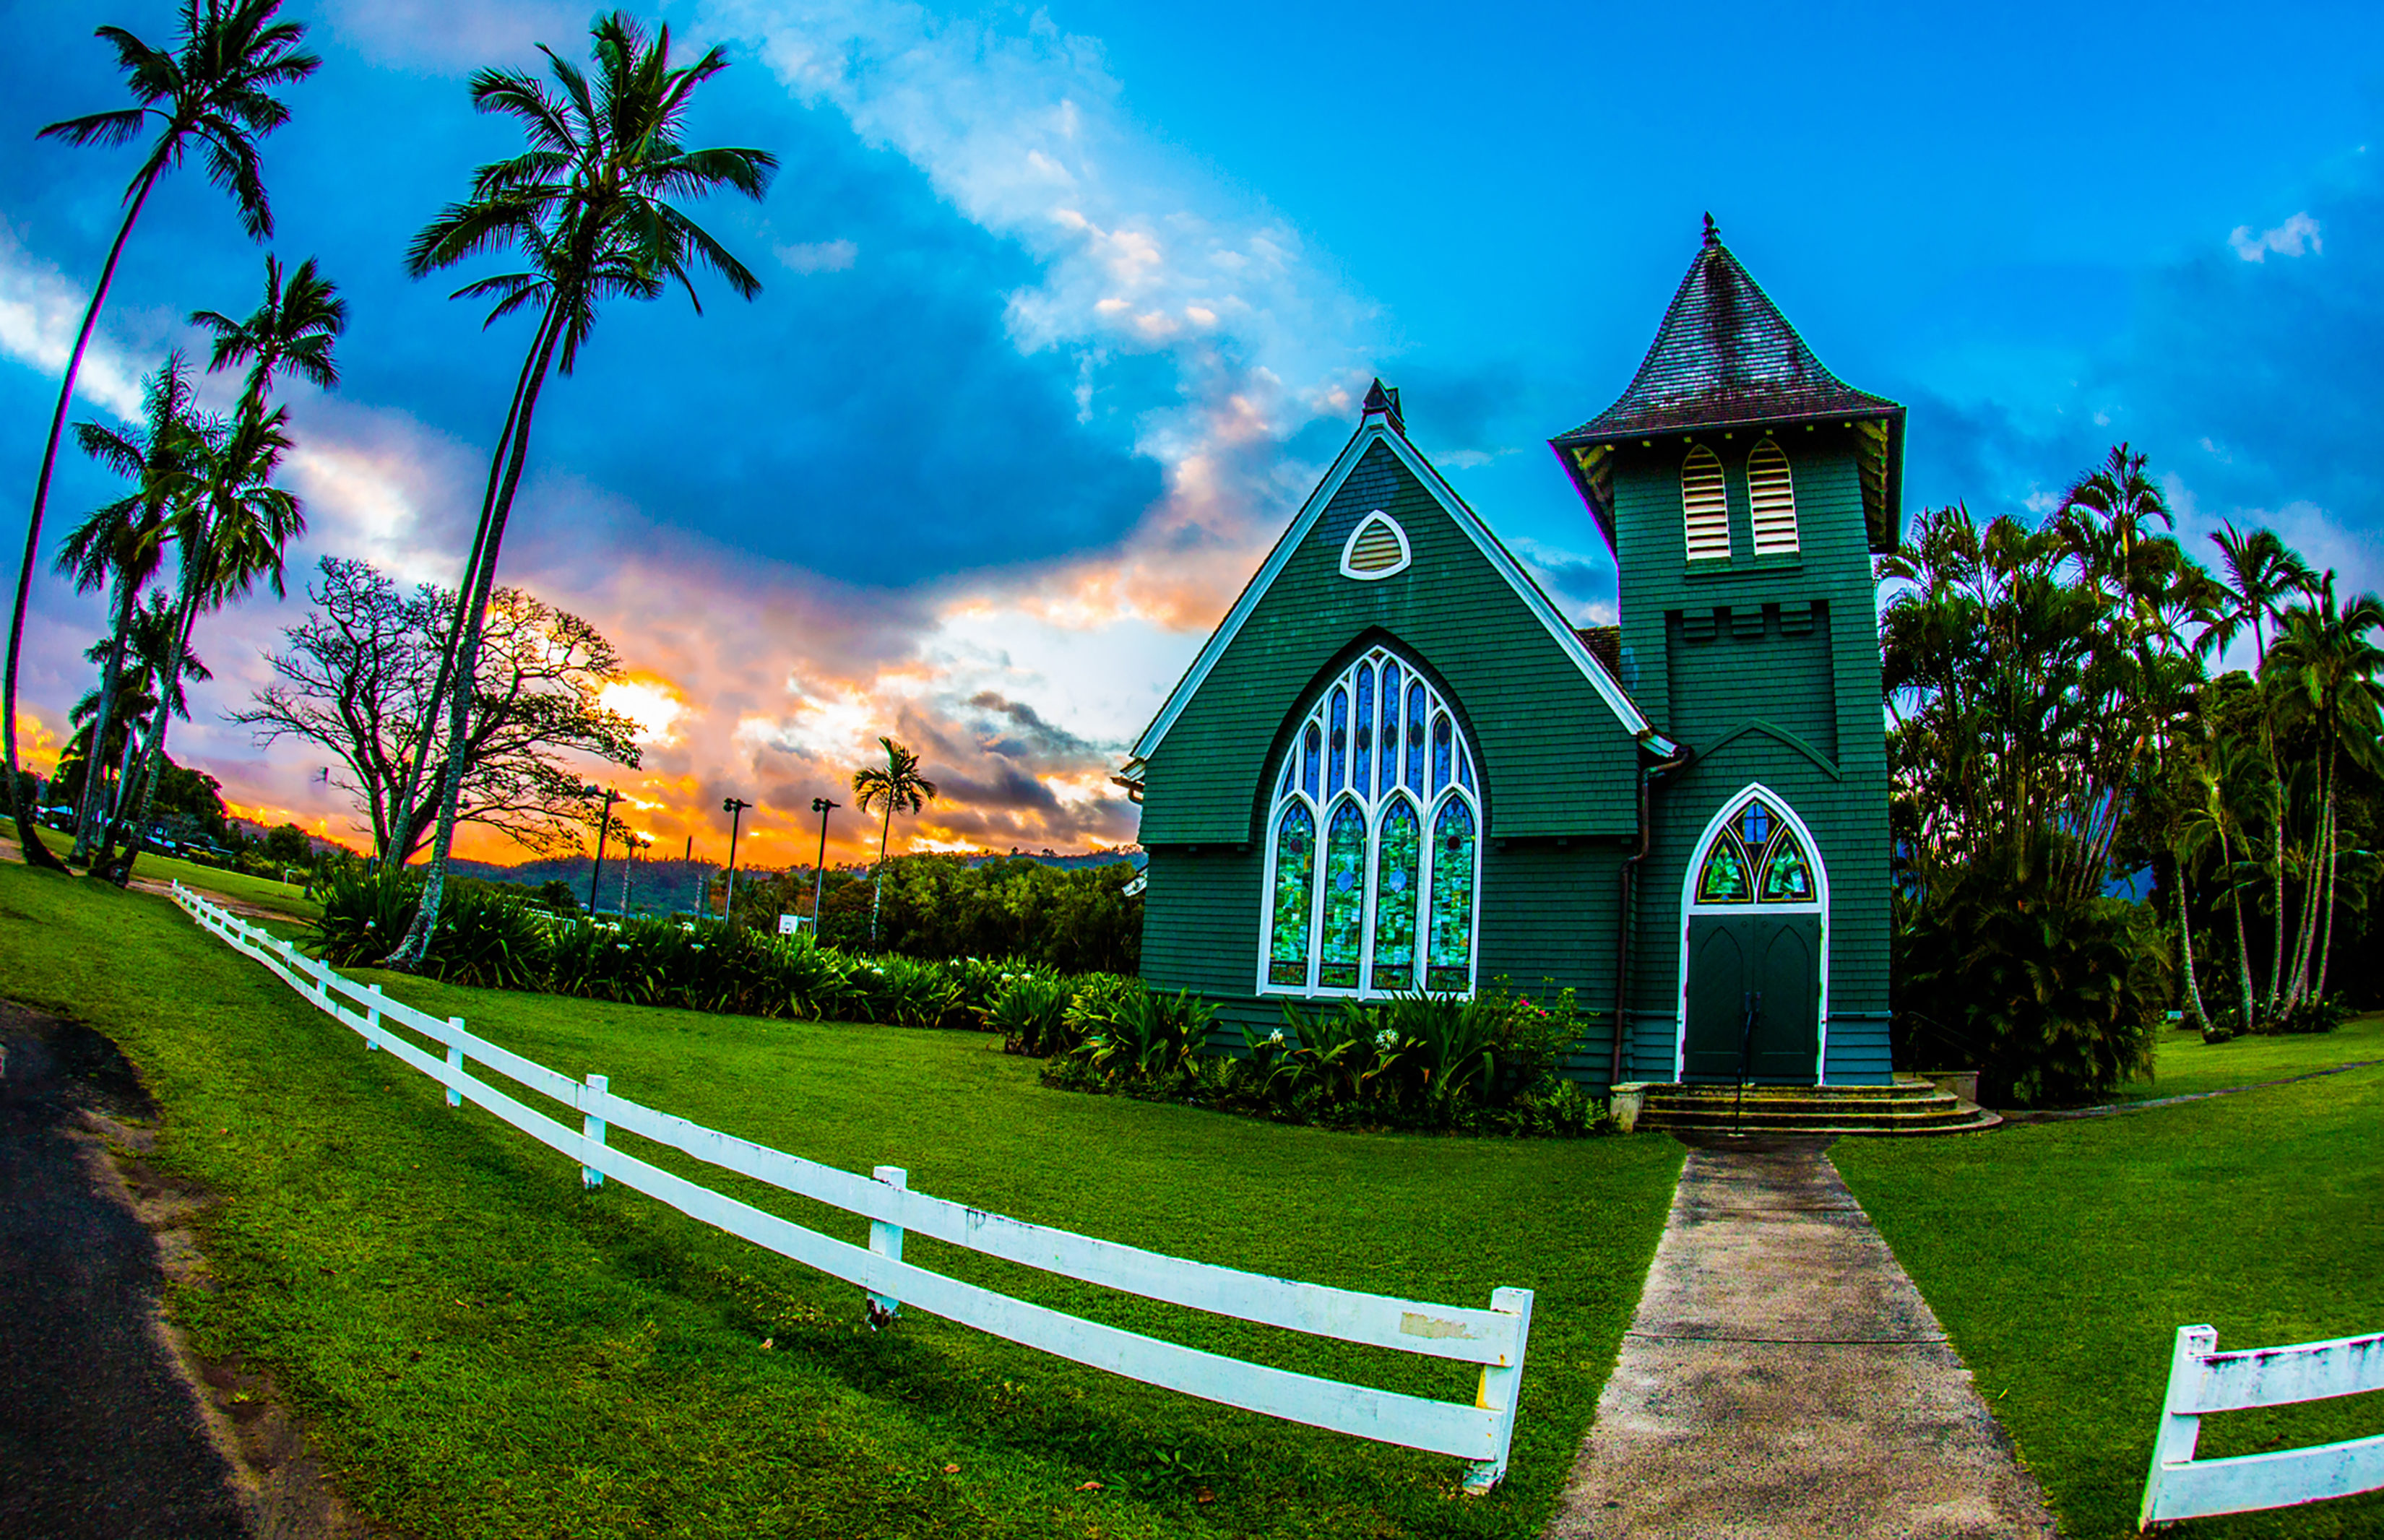 Princeville-Vacations Waioli Church-3300x2132-300dpi